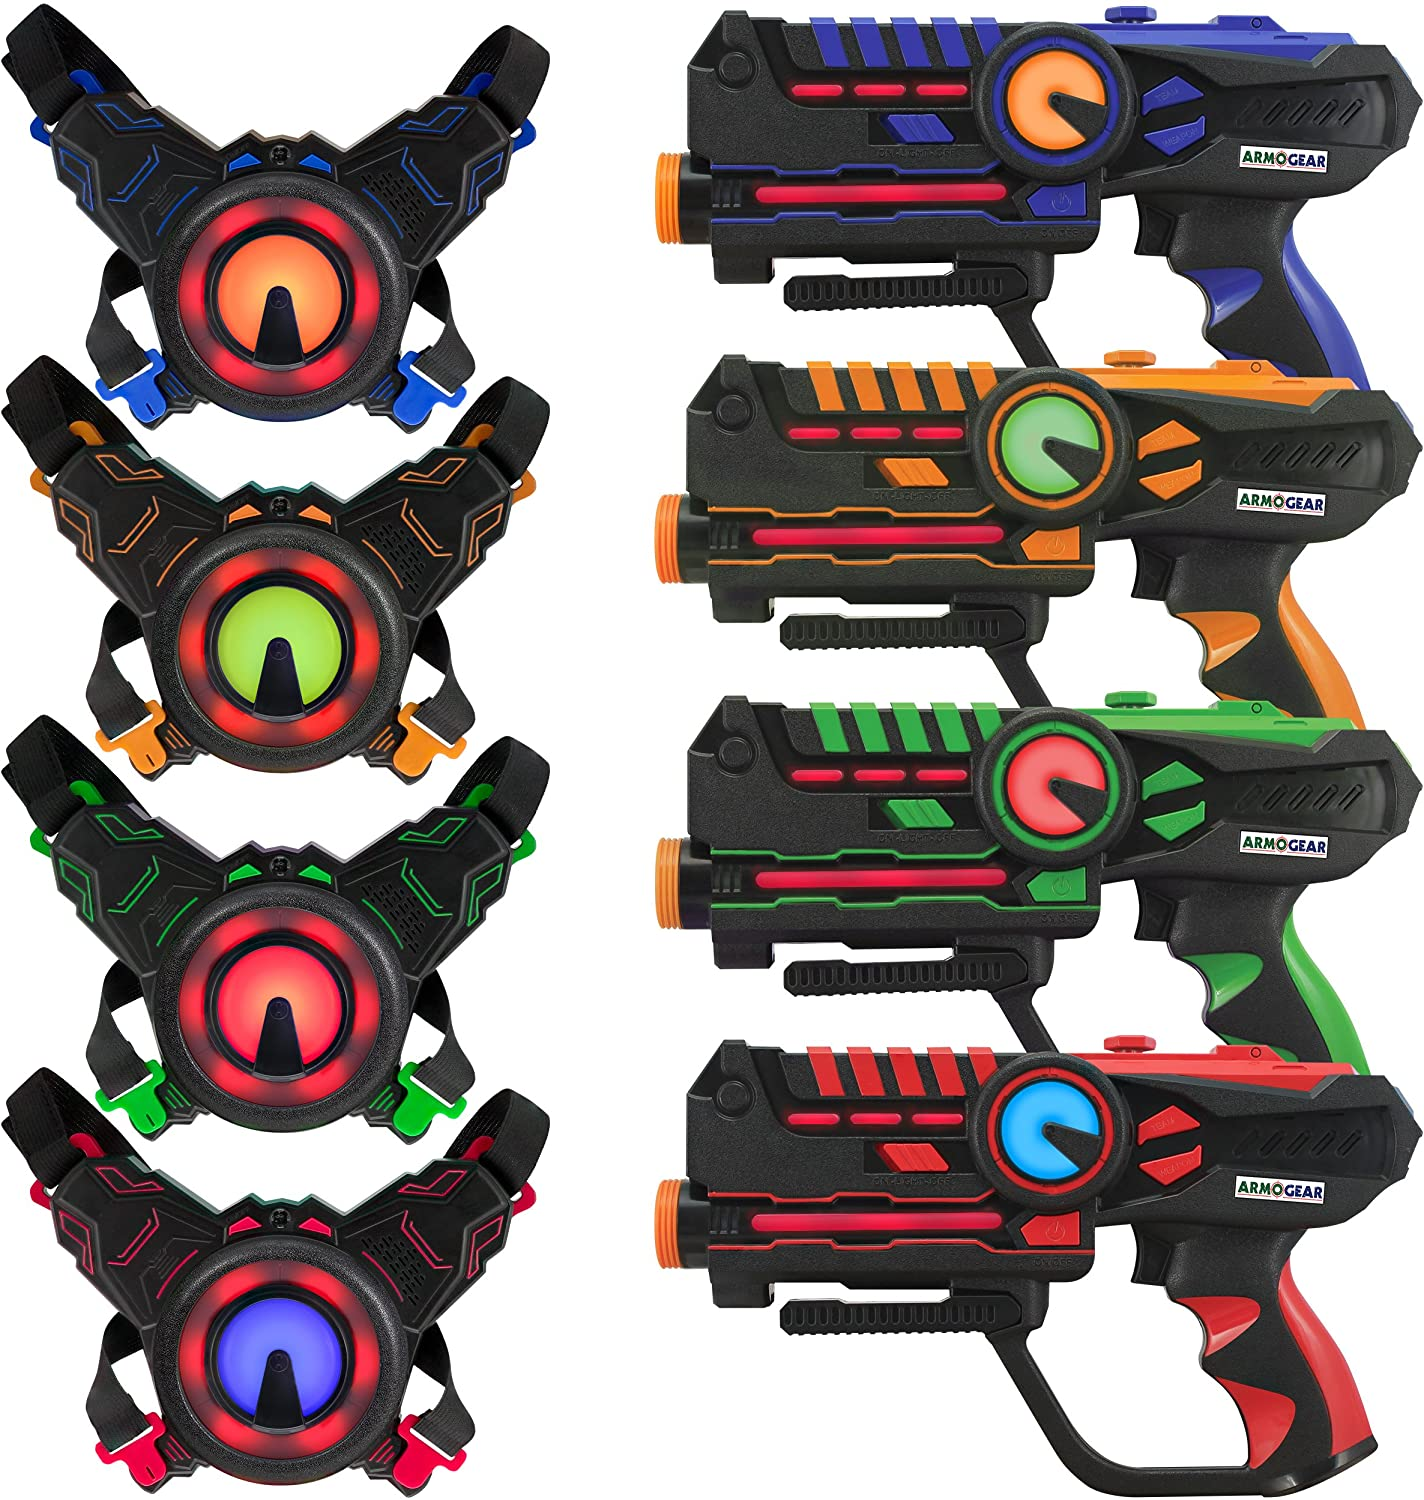 ArmoGear Laser Tag Vests and Blasters